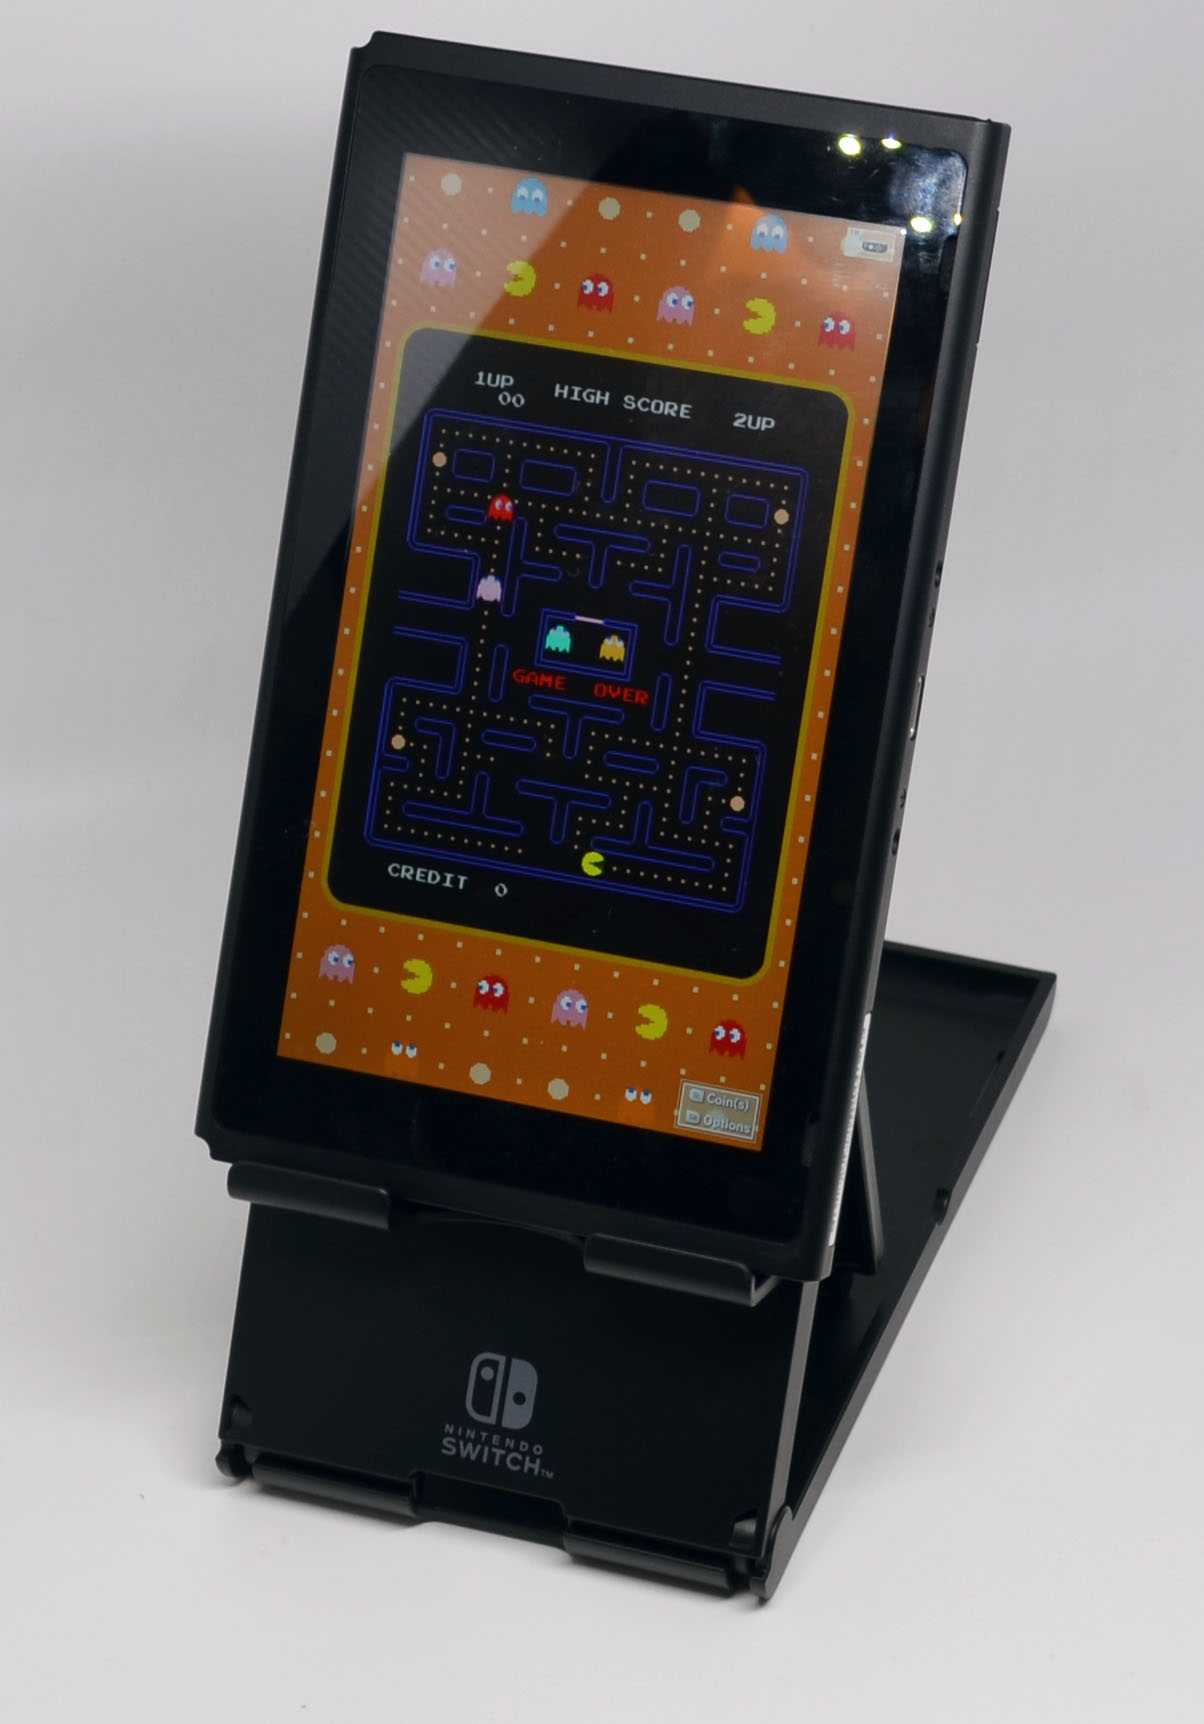 Vertical placement, the way these classic arcade games were meant to be played.